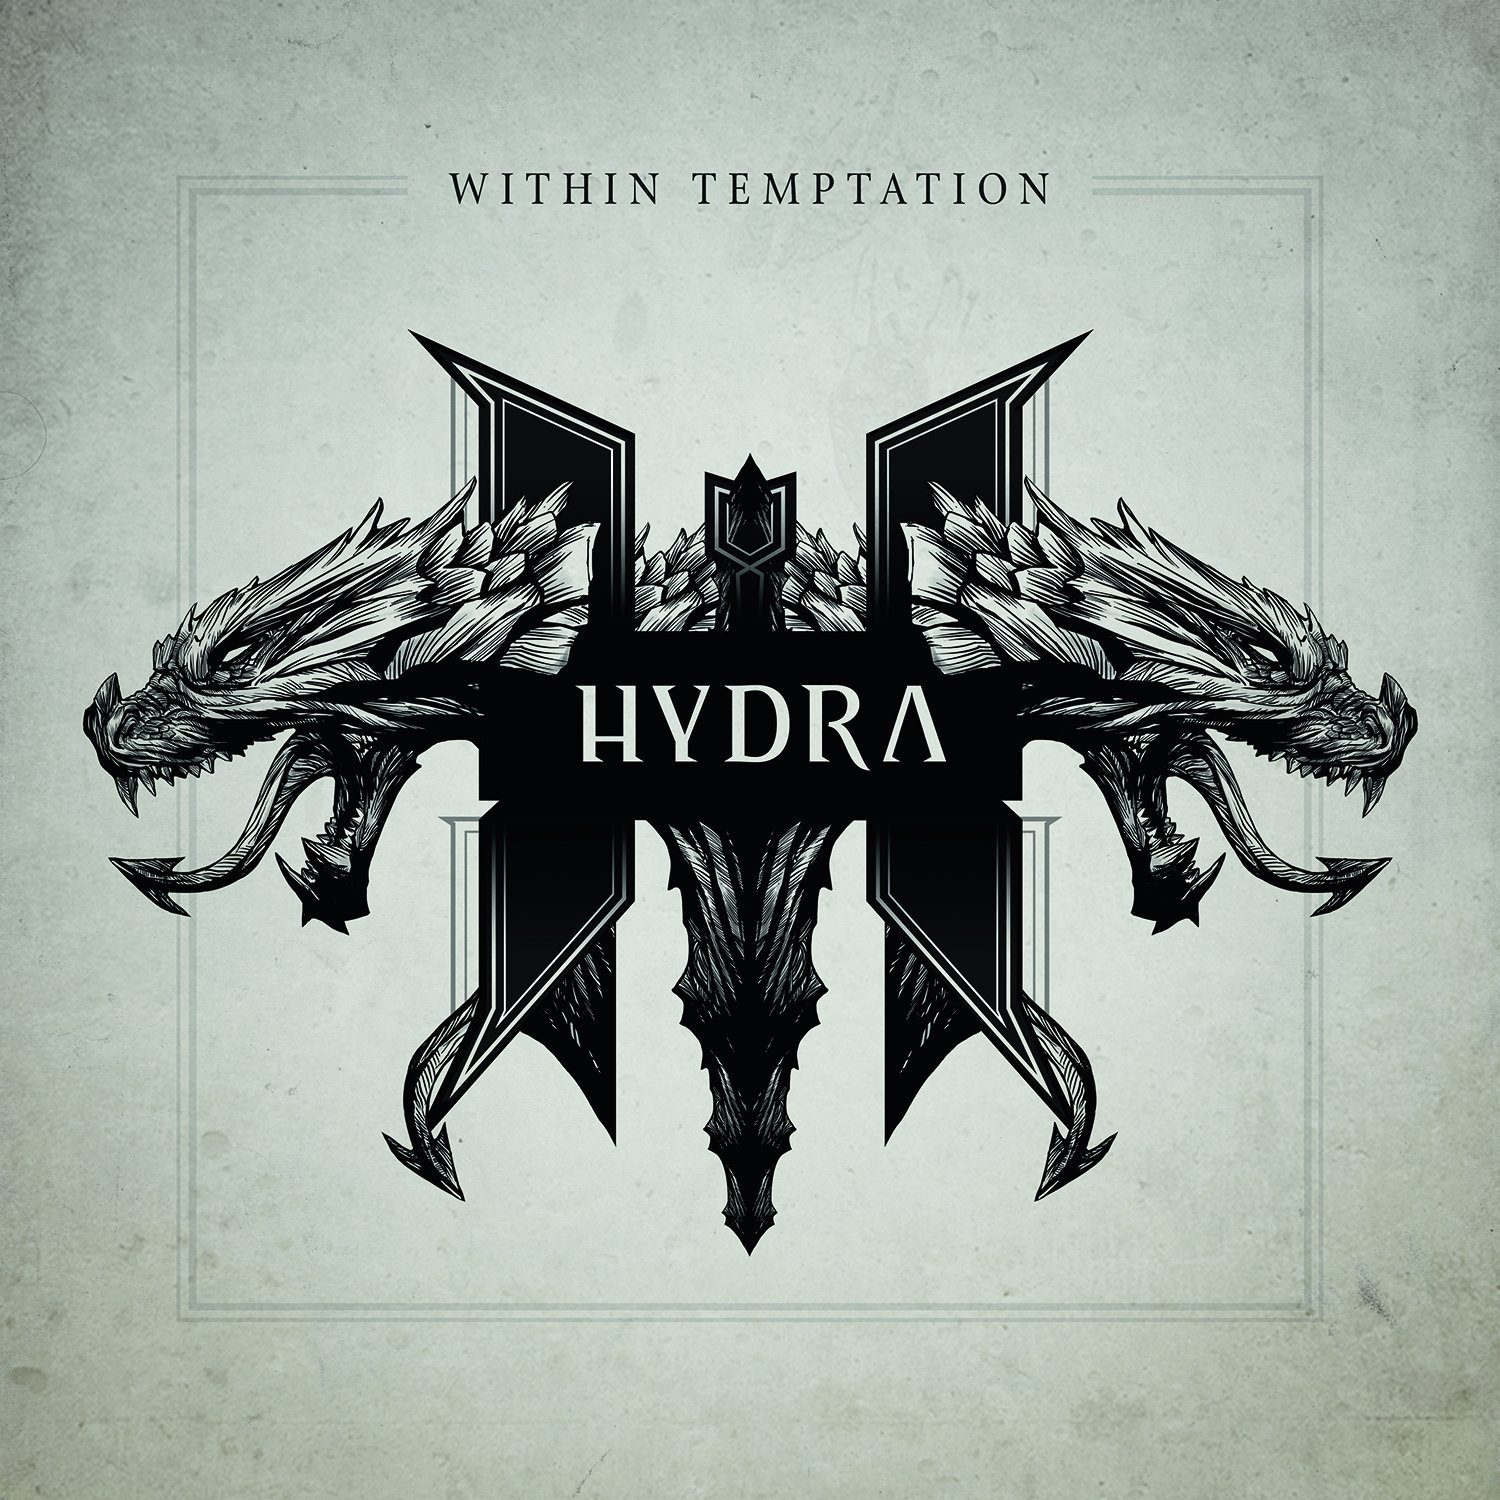 Within Temptation: Hydra (2014) Book Cover